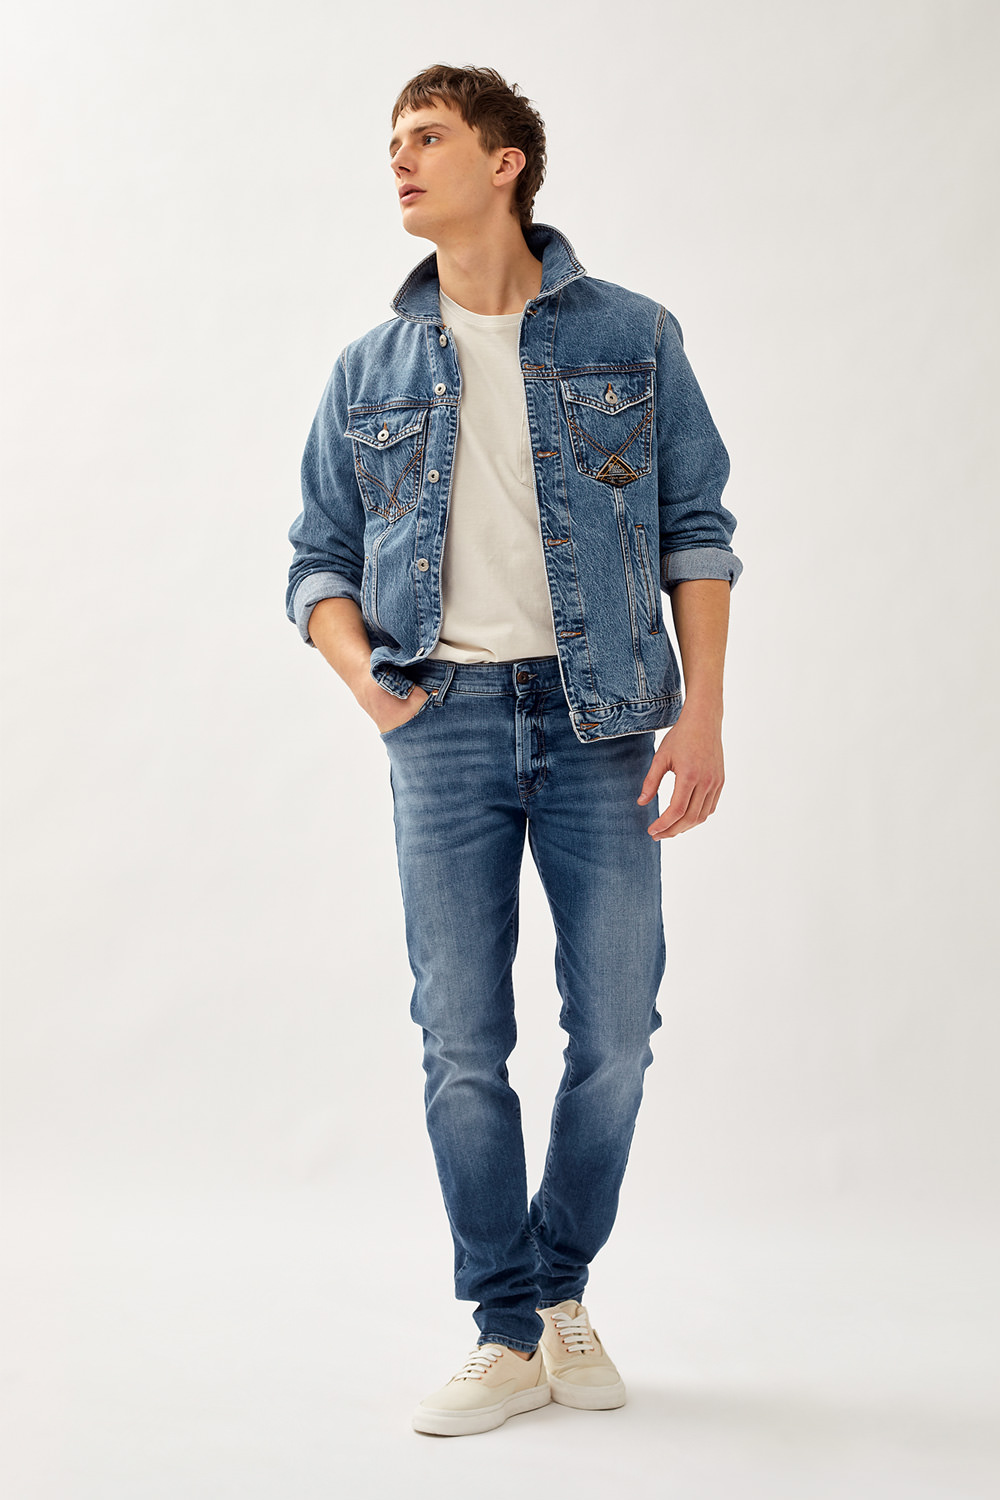 ROY ROGERS: SMART517 JEANS